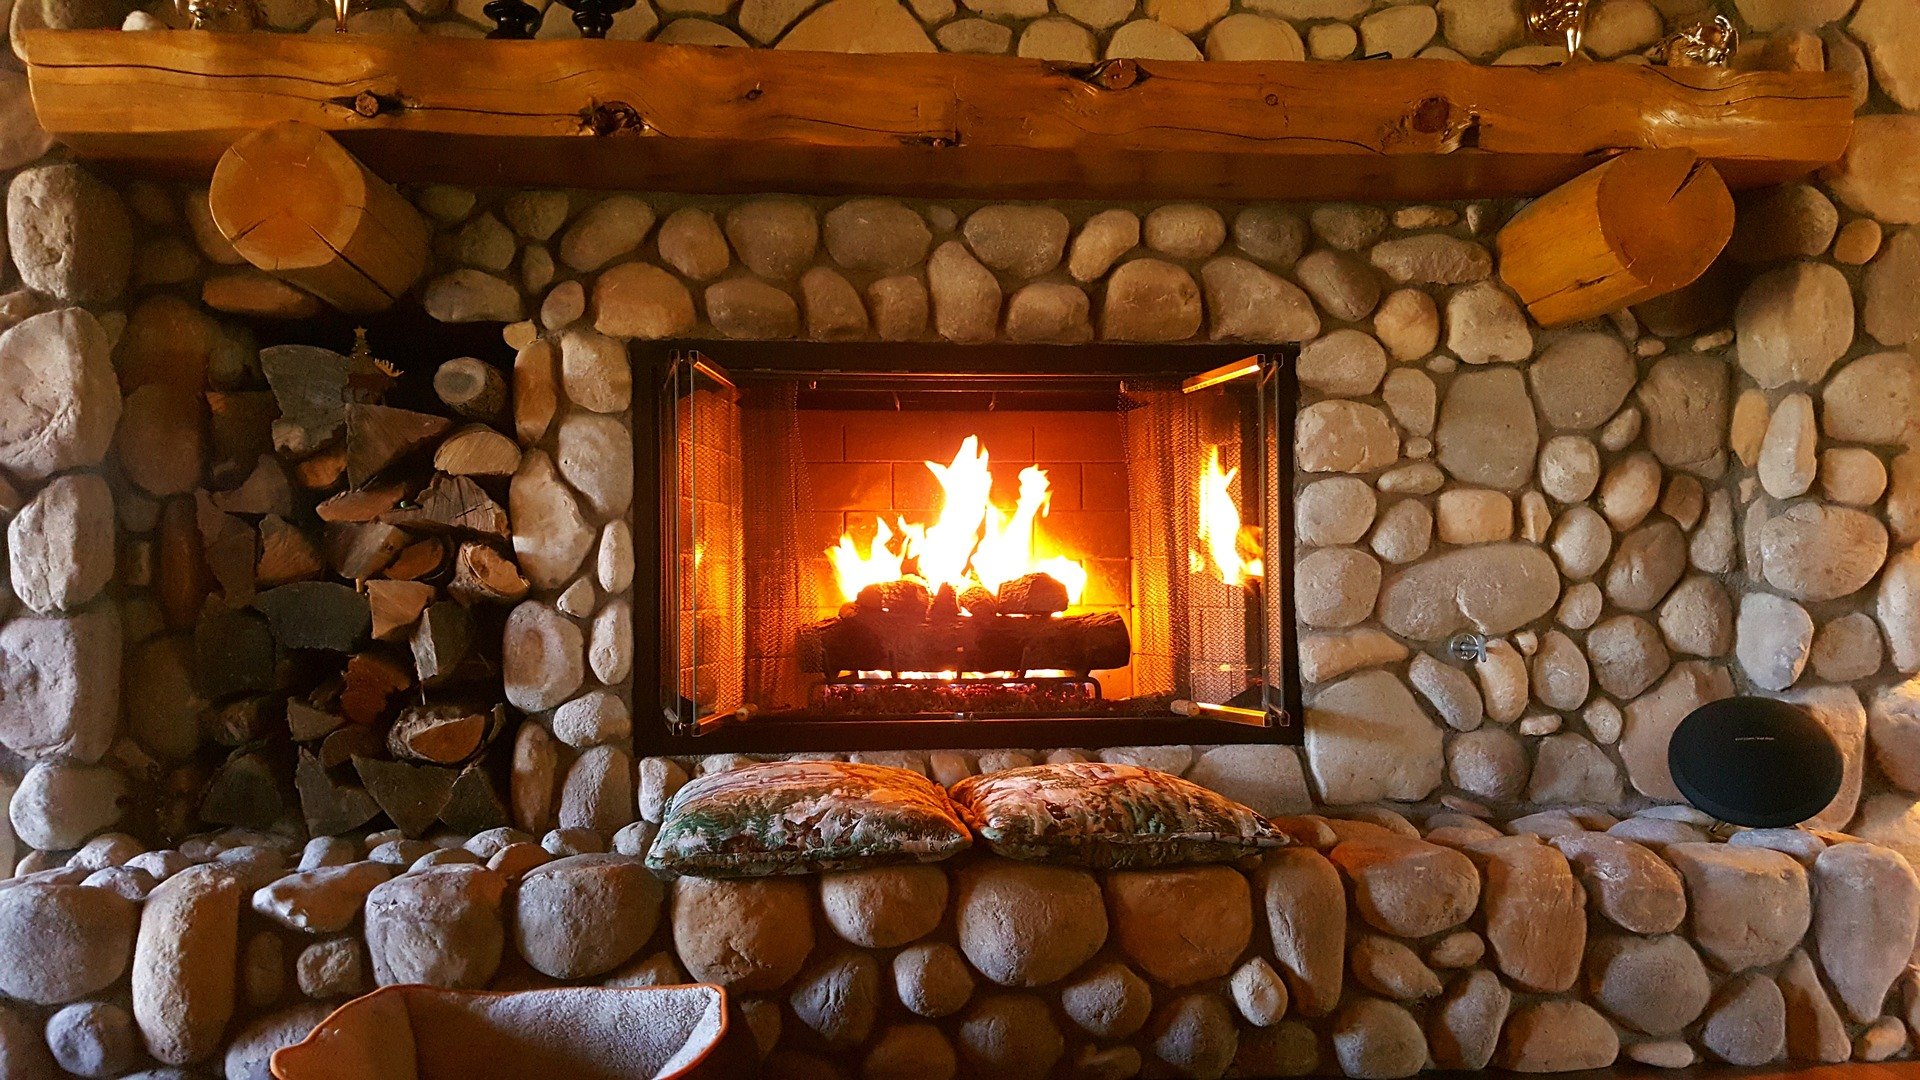 Fireplaces may not be capable of heating an entire home, so consider closing off rooms that aren't being used so living areas will be warmer.